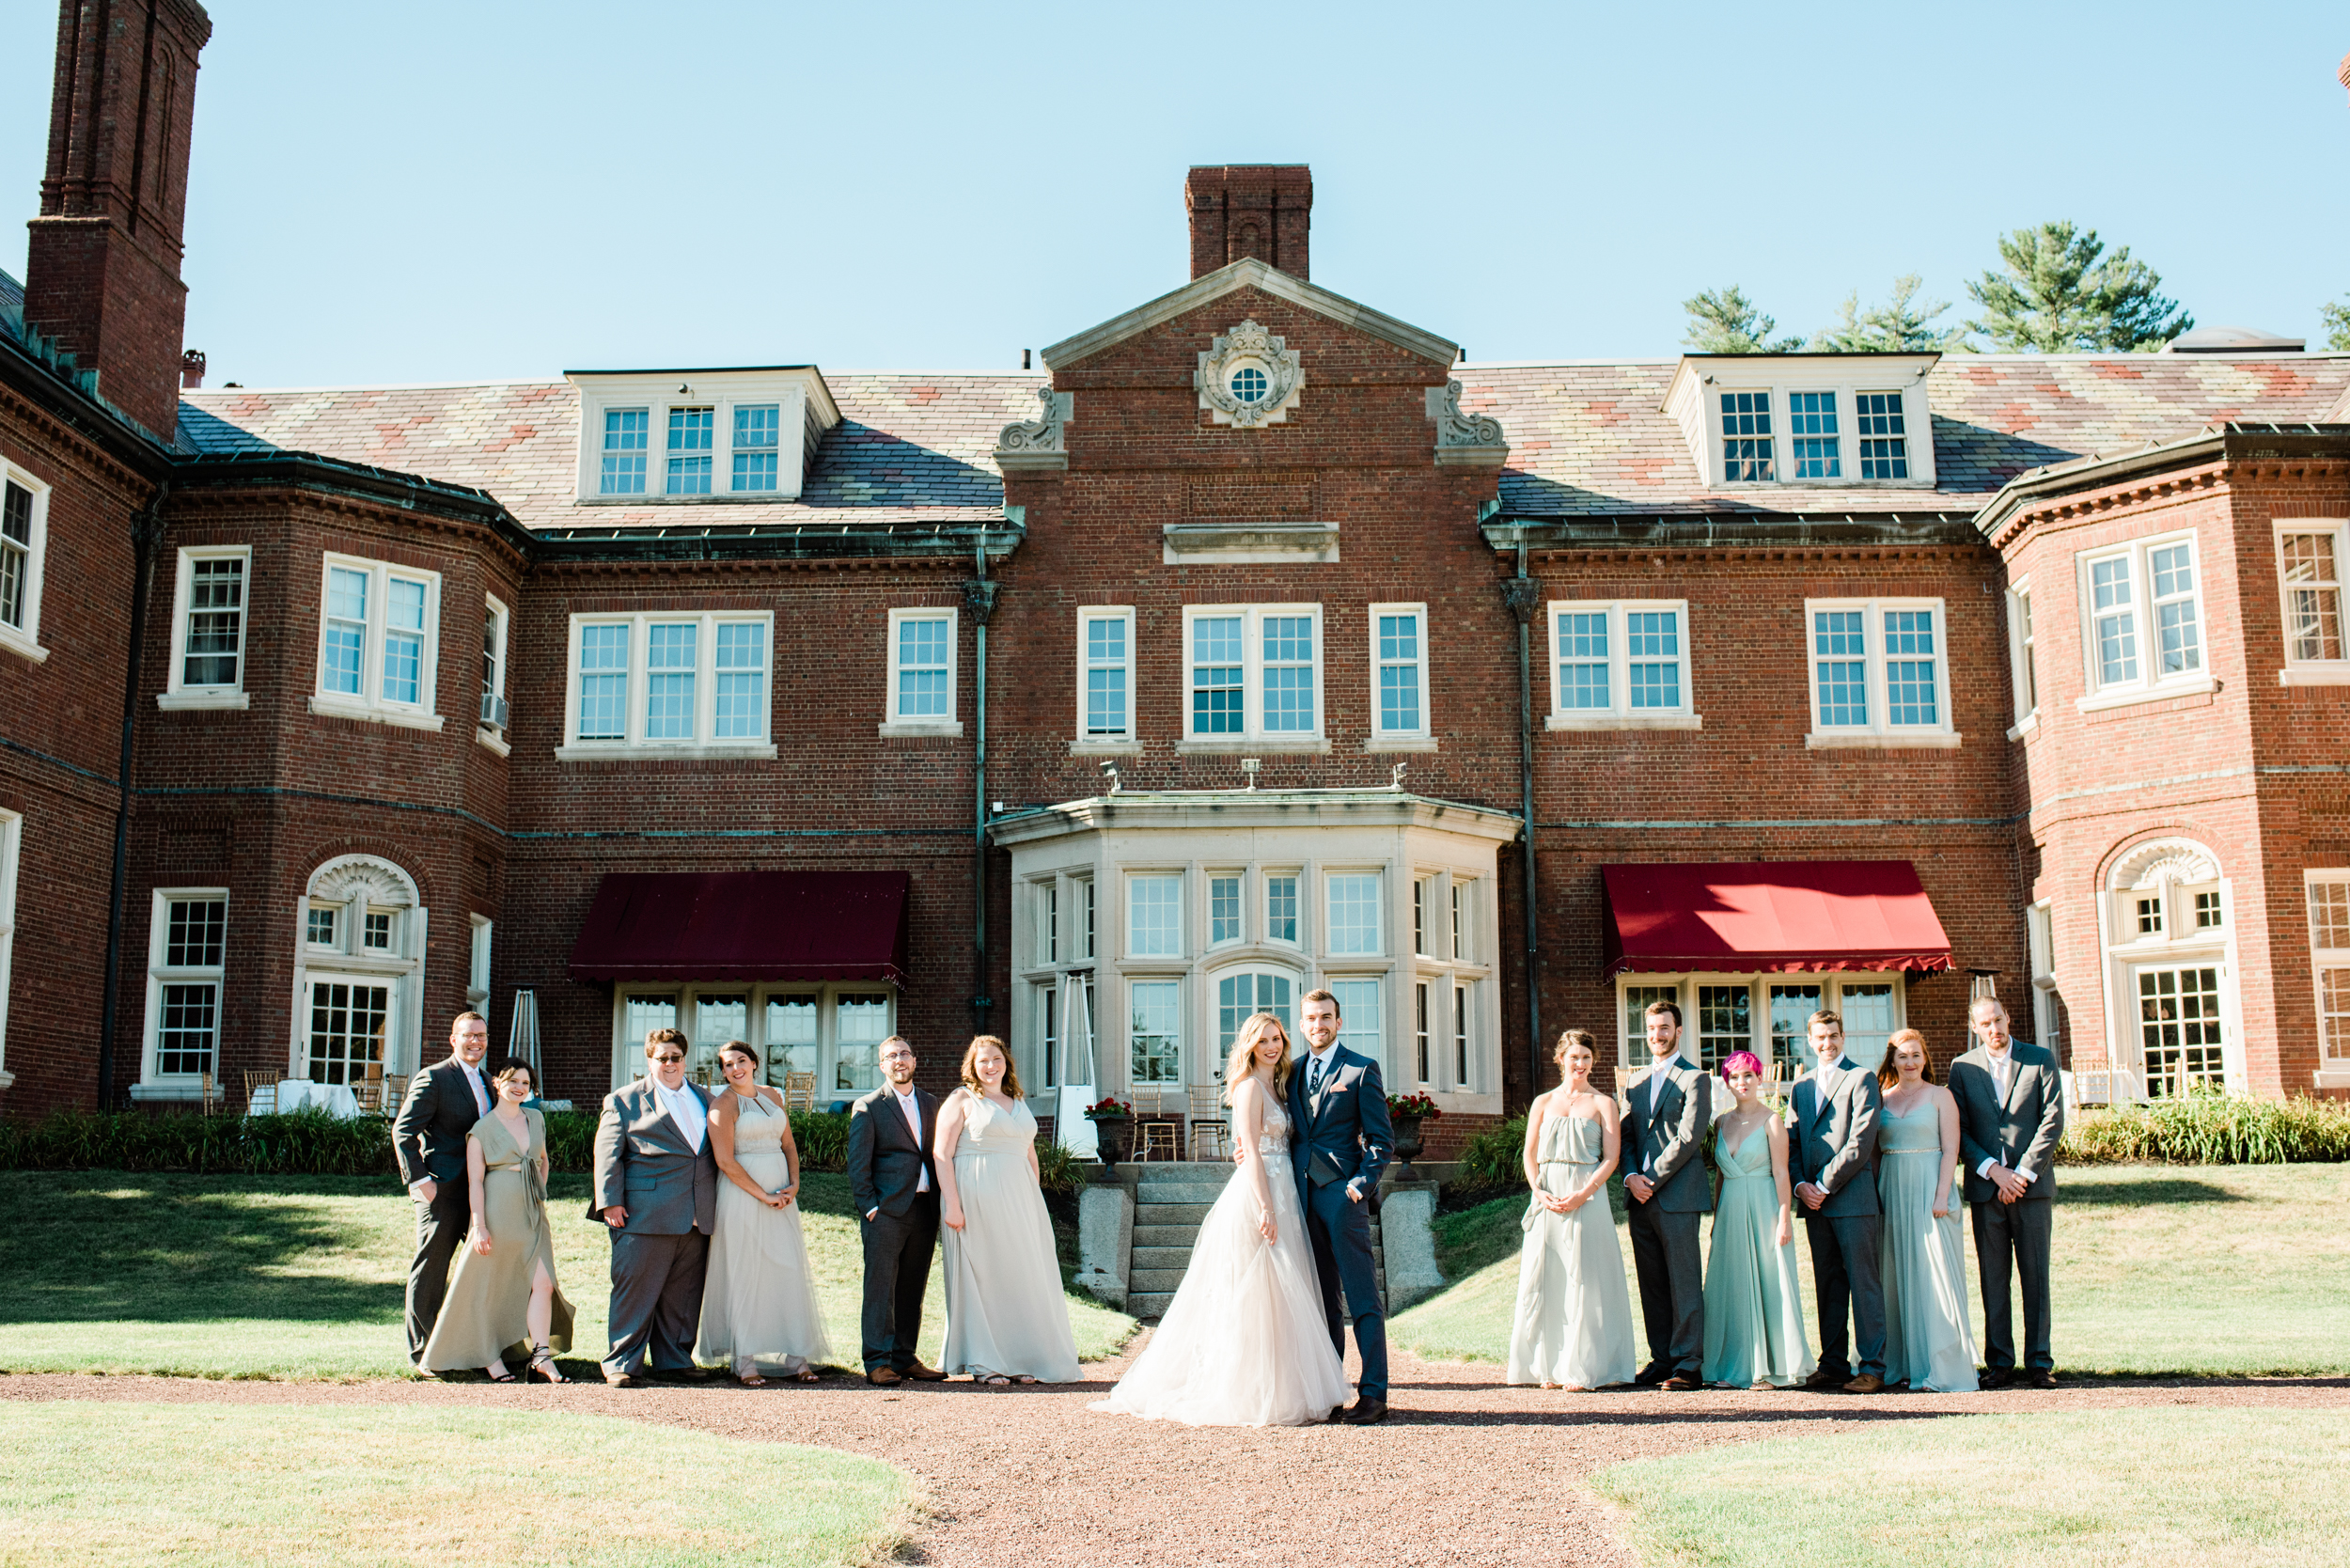 The Mansion on Turner Hill Wedding